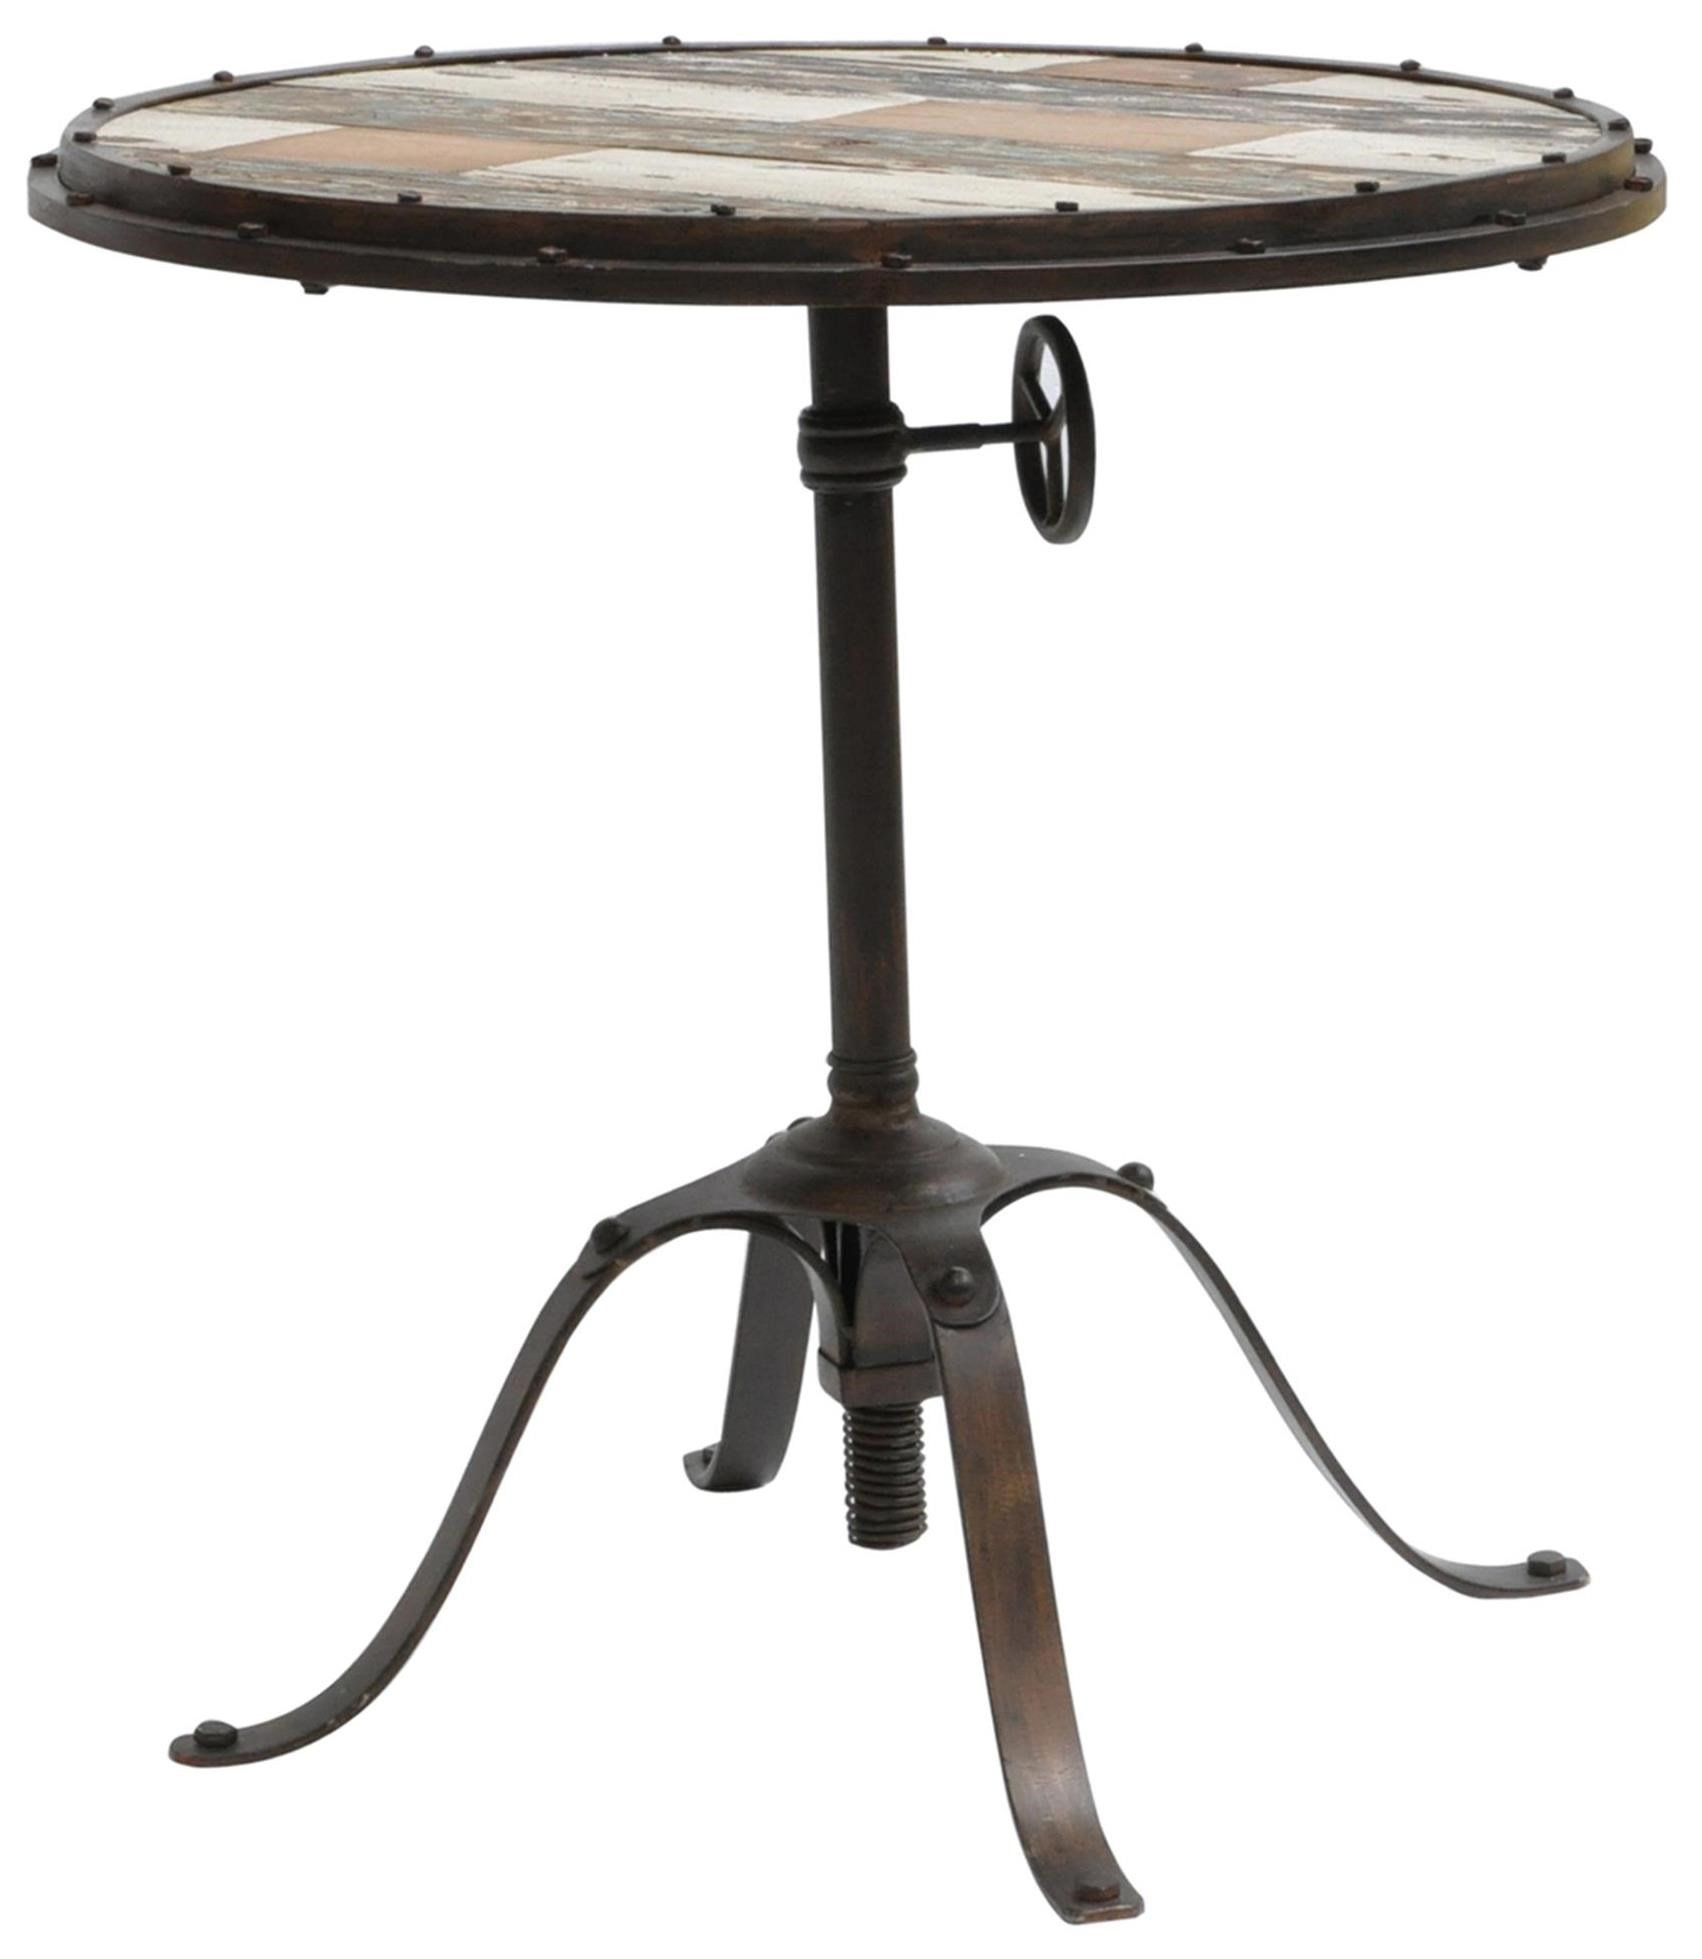 Crestview Collection Accent Furniture Ricci Round Table With Industrial  Metal Base And Distressed Painted Wood Top